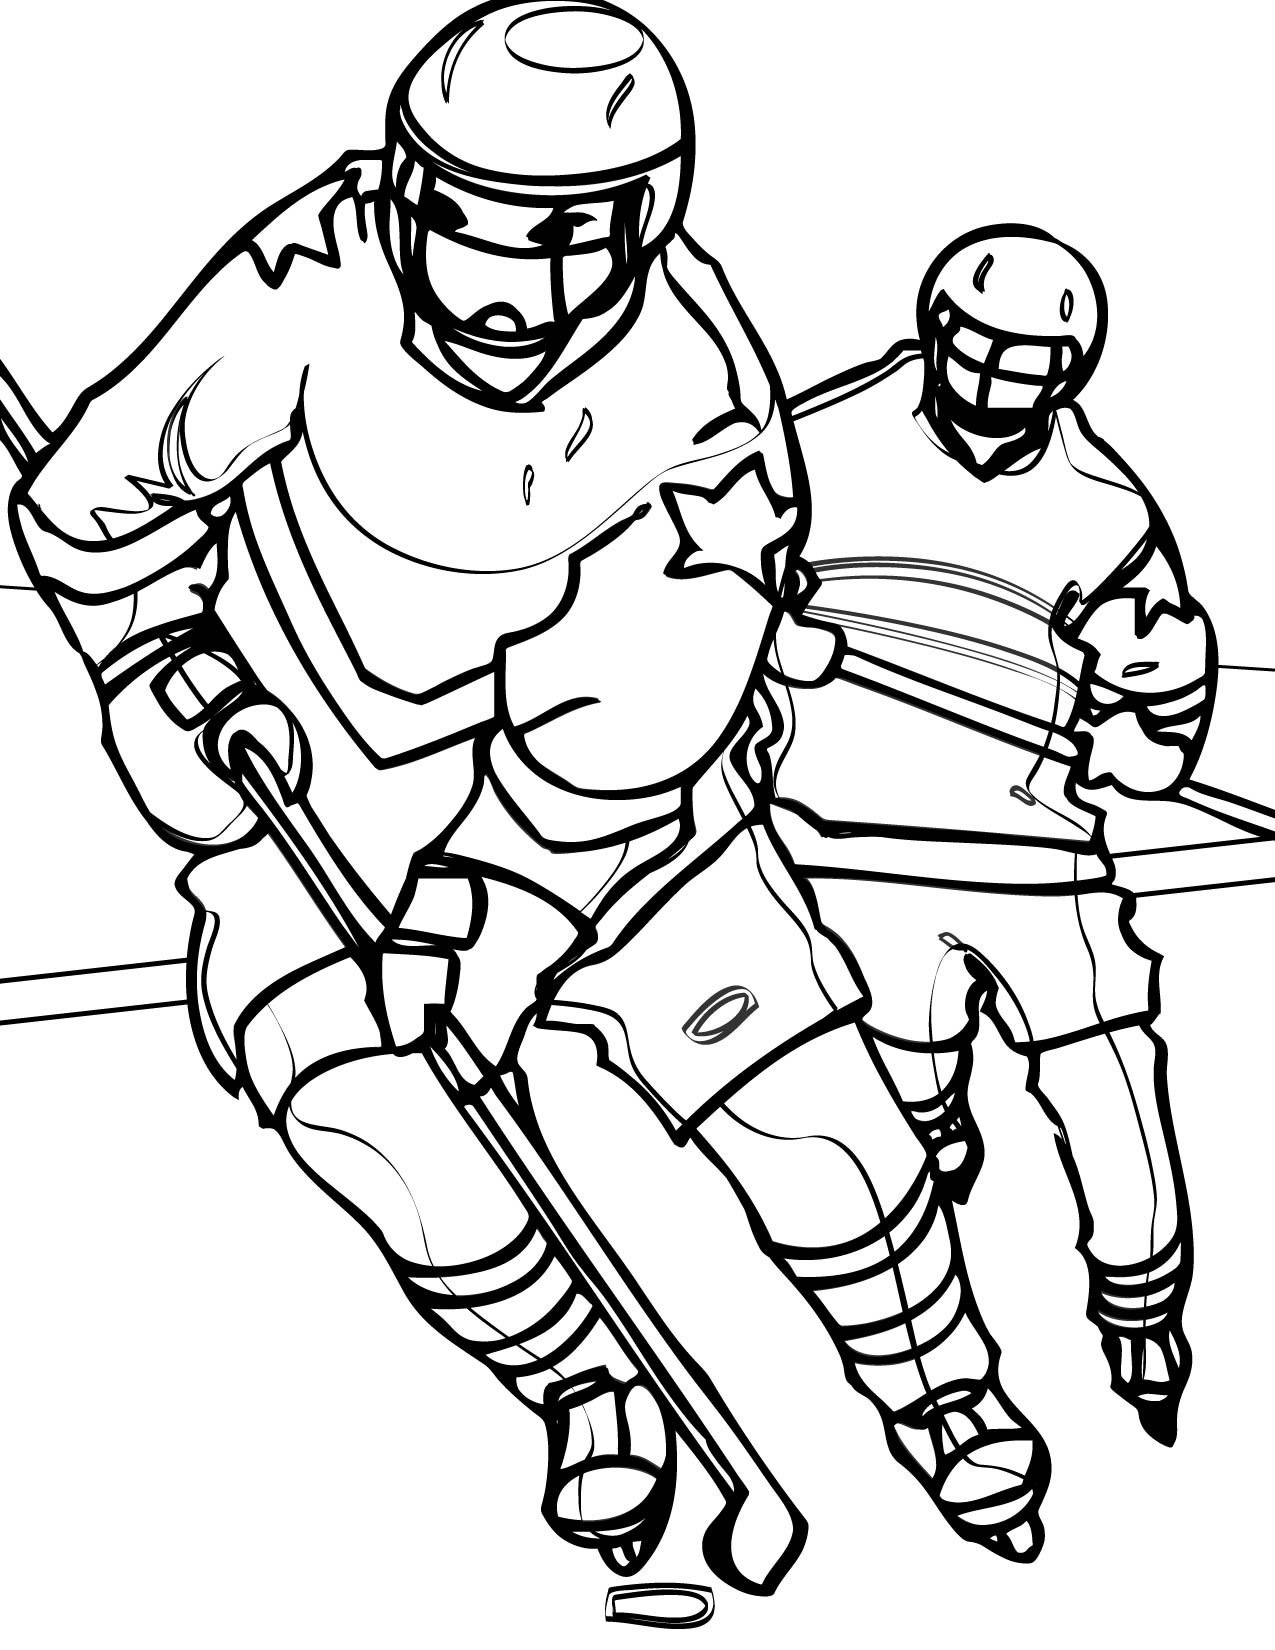 Free coloring pages of sports logos